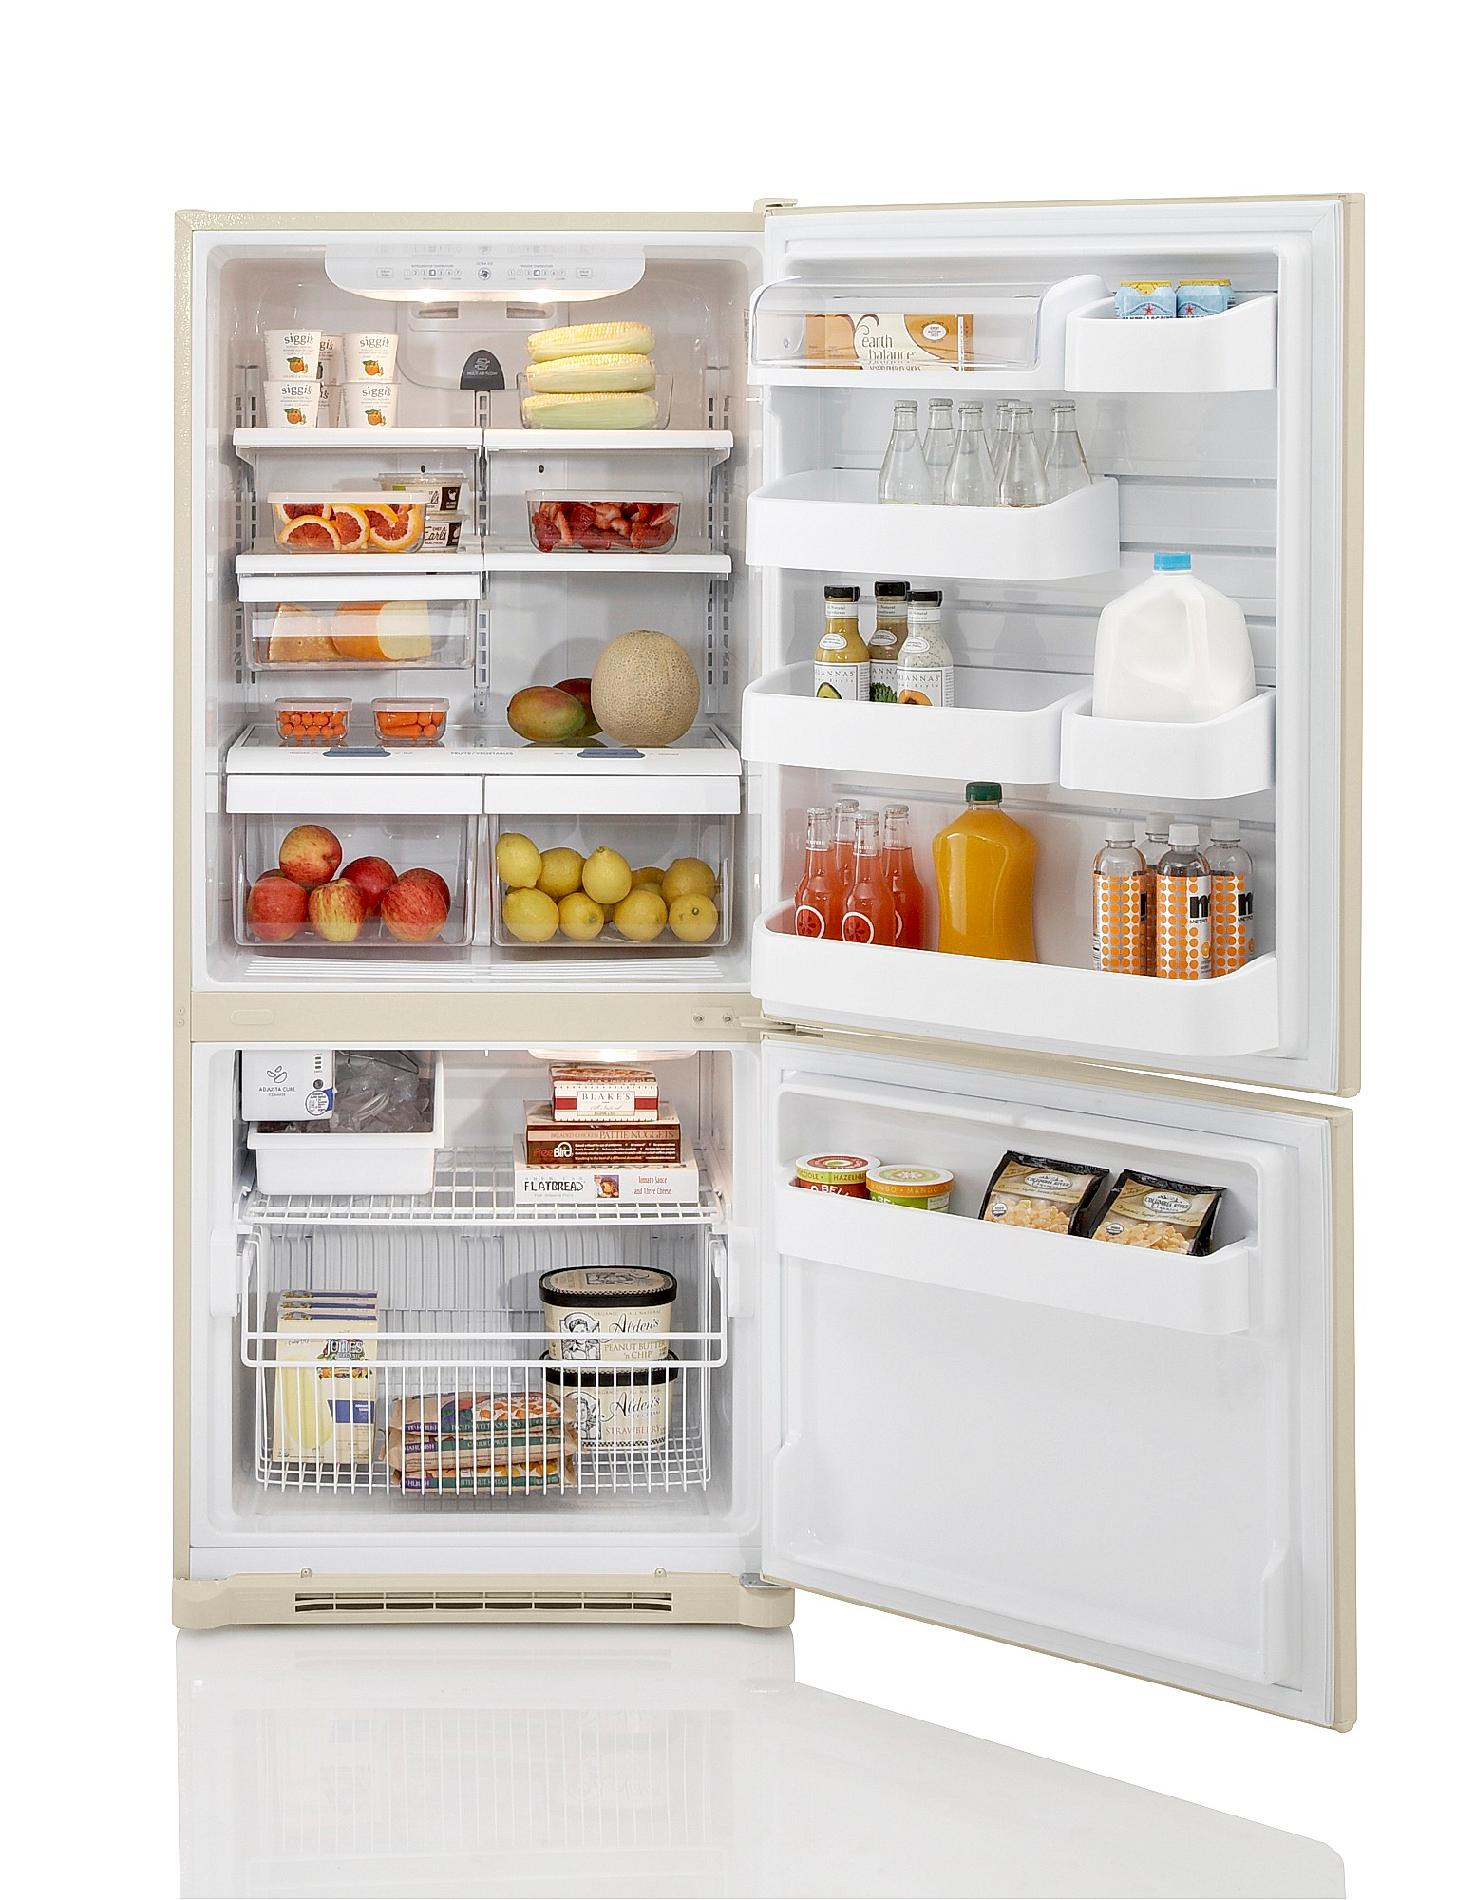 Kenmore 19.7 cu. ft. Bottom Freezer Refrigerator - Bisque